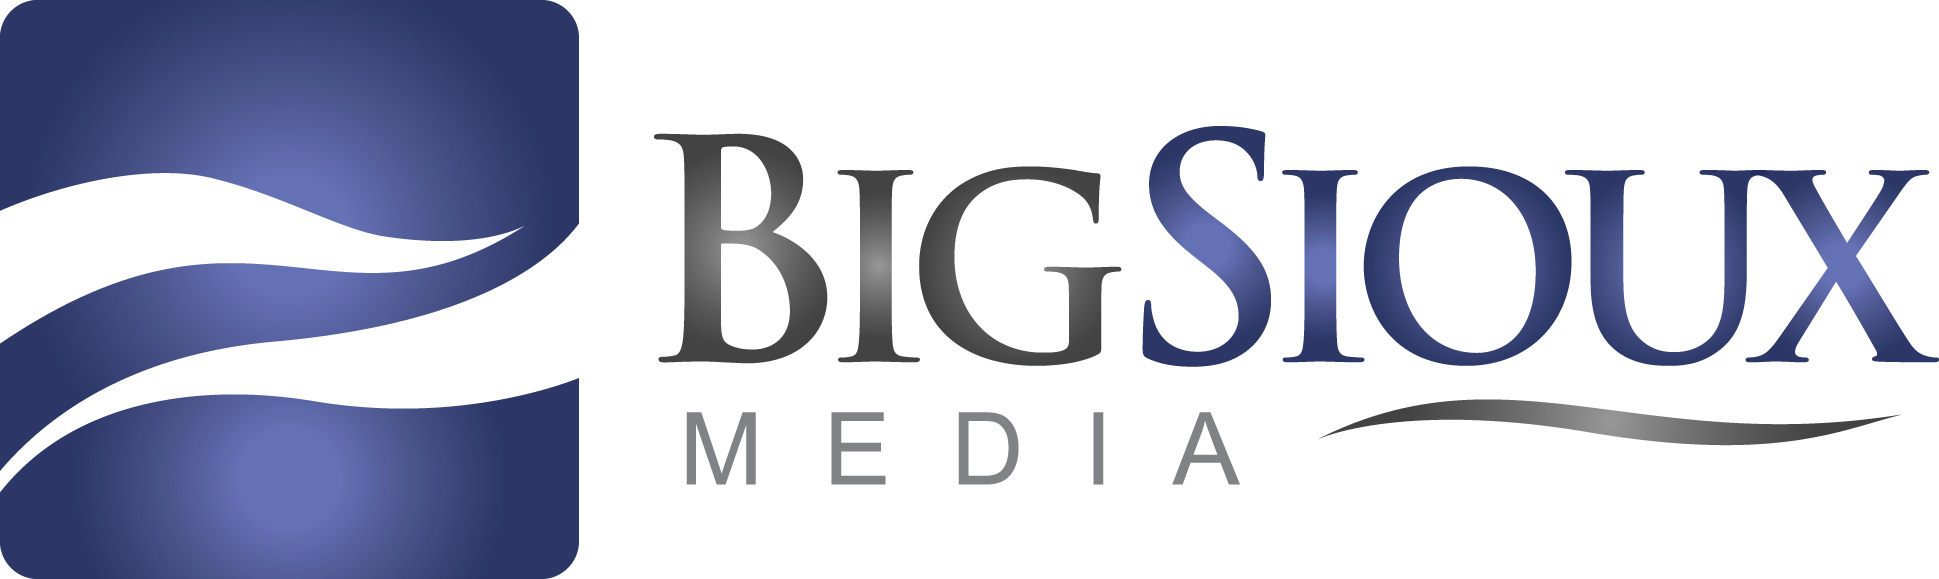 Big Sioux Media_for digital.jpg